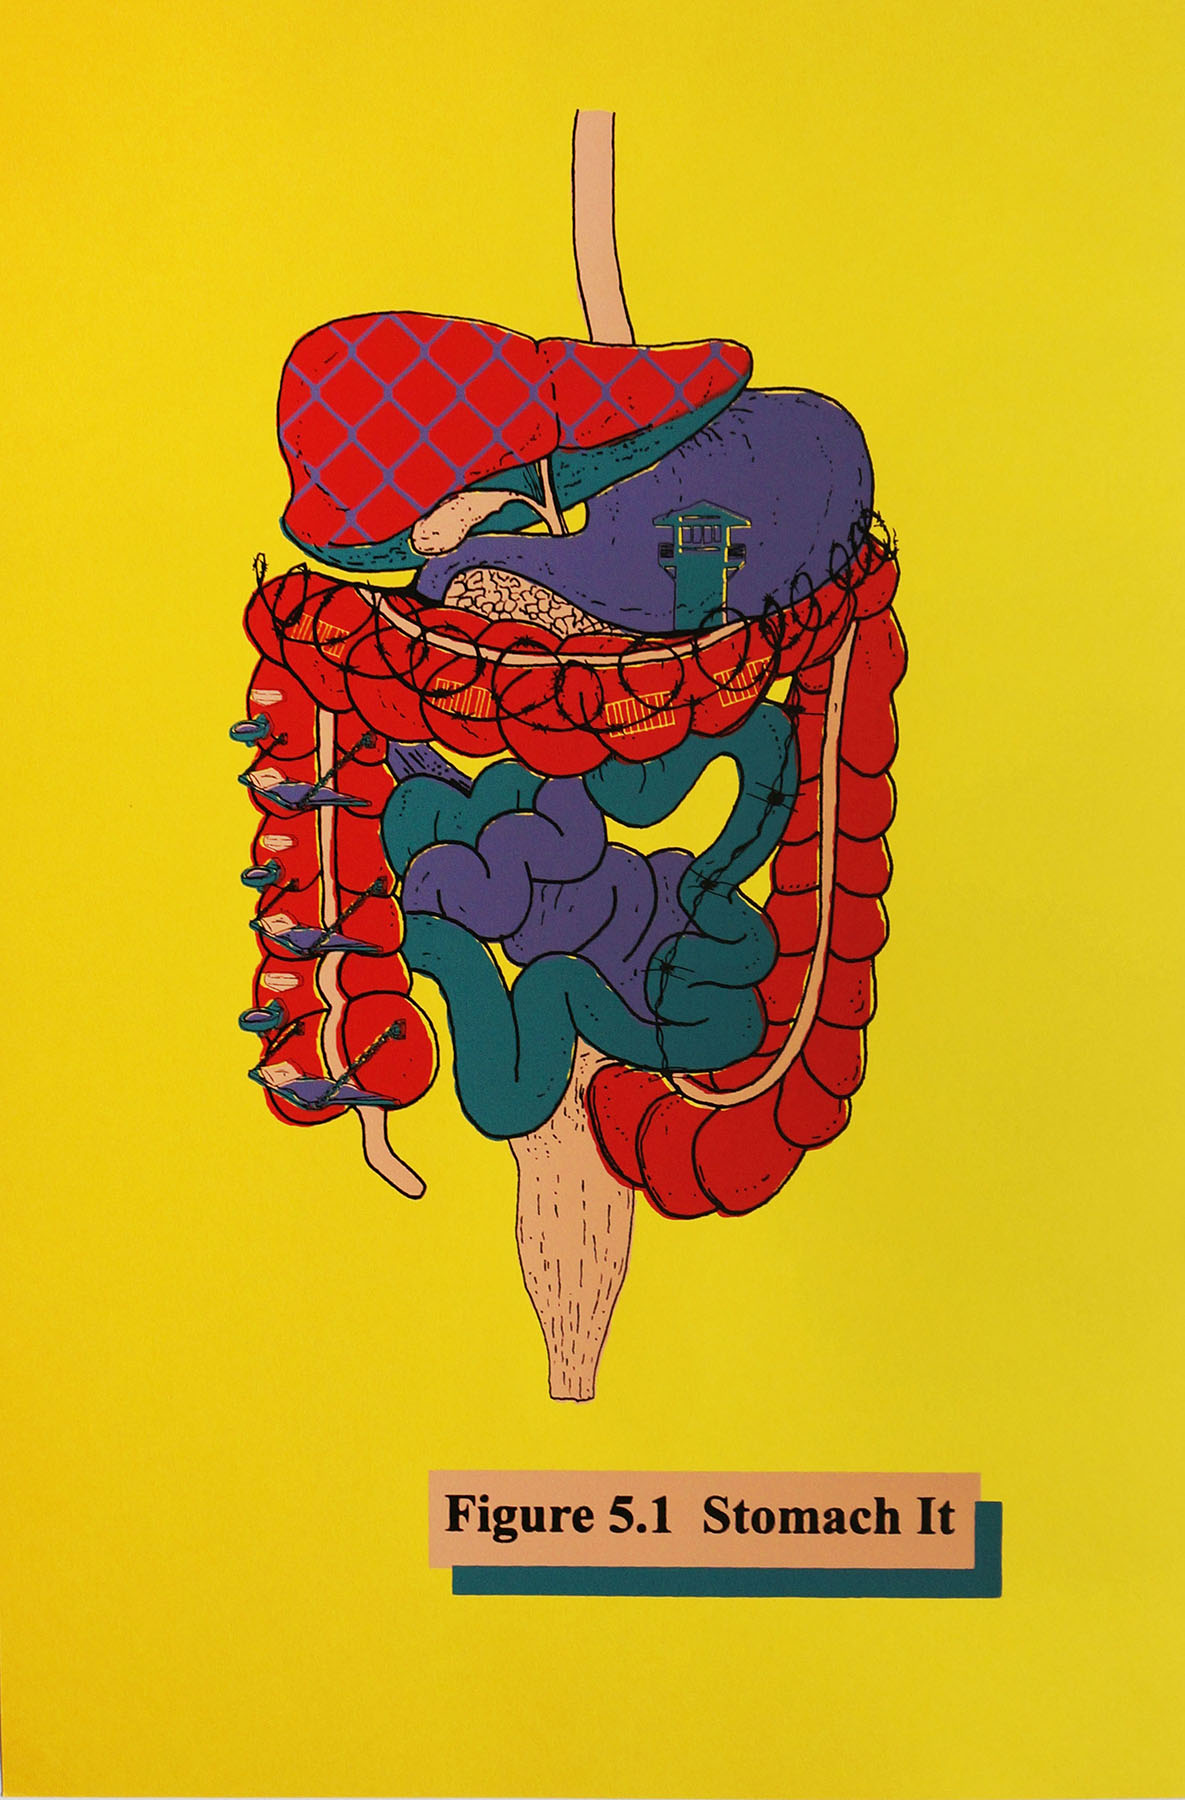 Ape_Bleakney_'Stomach It (Yellow)', Screen Print, 12.5''x19'', 2018.jpg